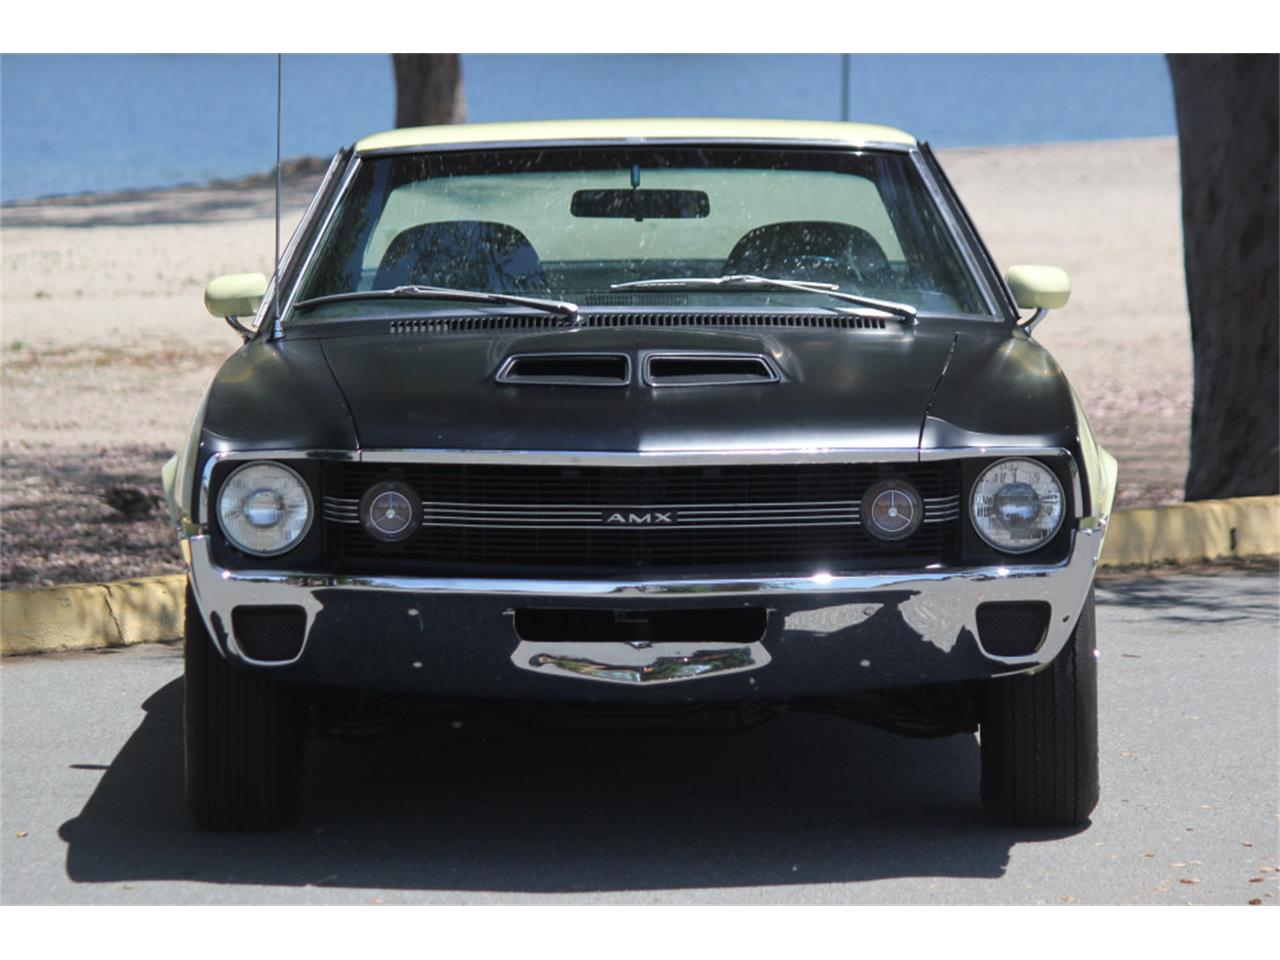 Large Picture of Classic 1970 AMC AMX located in San Diego  California - $59,500.00 - QCFB